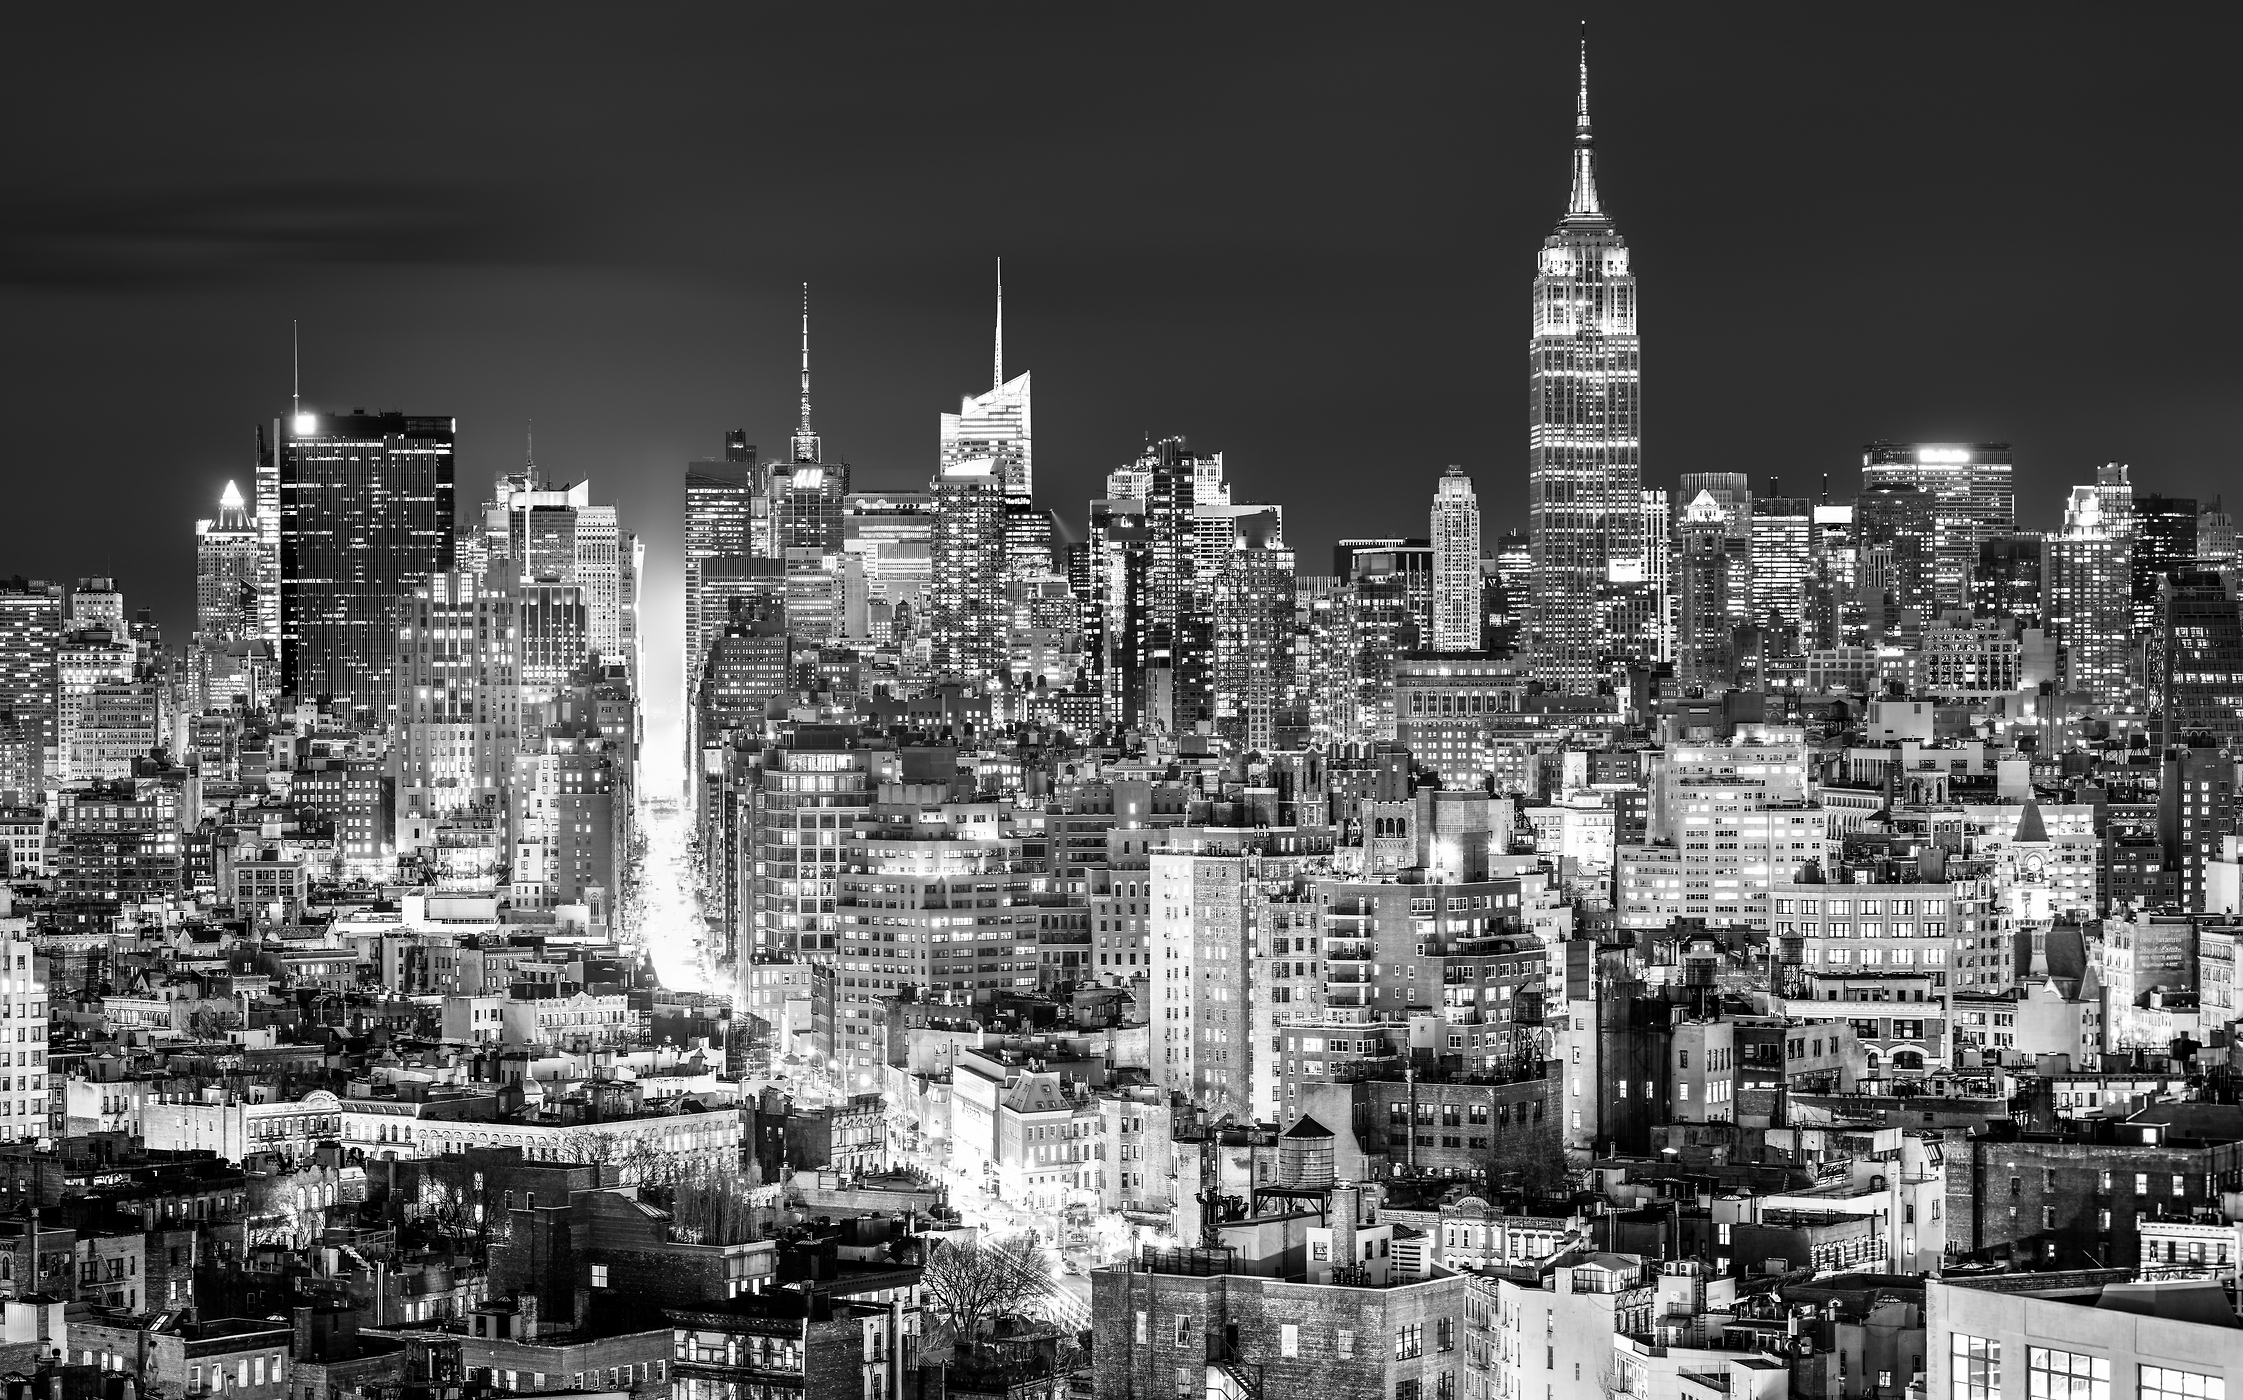 1,105 megapixels! A very high resolution, large-format VAST photo print of the Manhattan, New York City skyline at night; cityscape photo created by Dan Piech